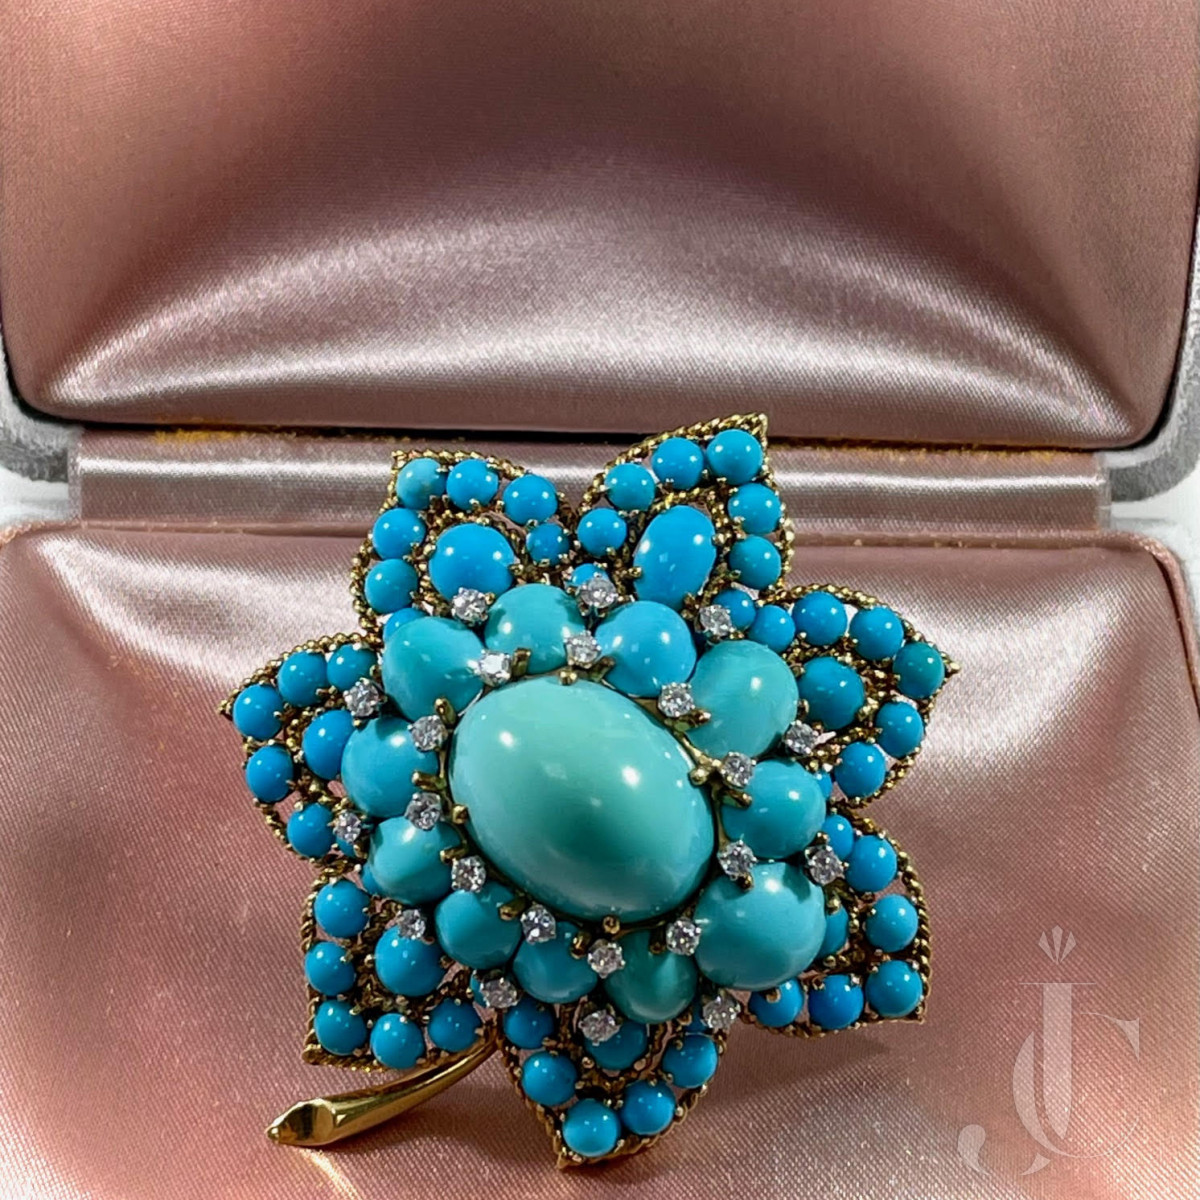 Van Cleef and Arpels 18kt yellow gold and turquoise brooch